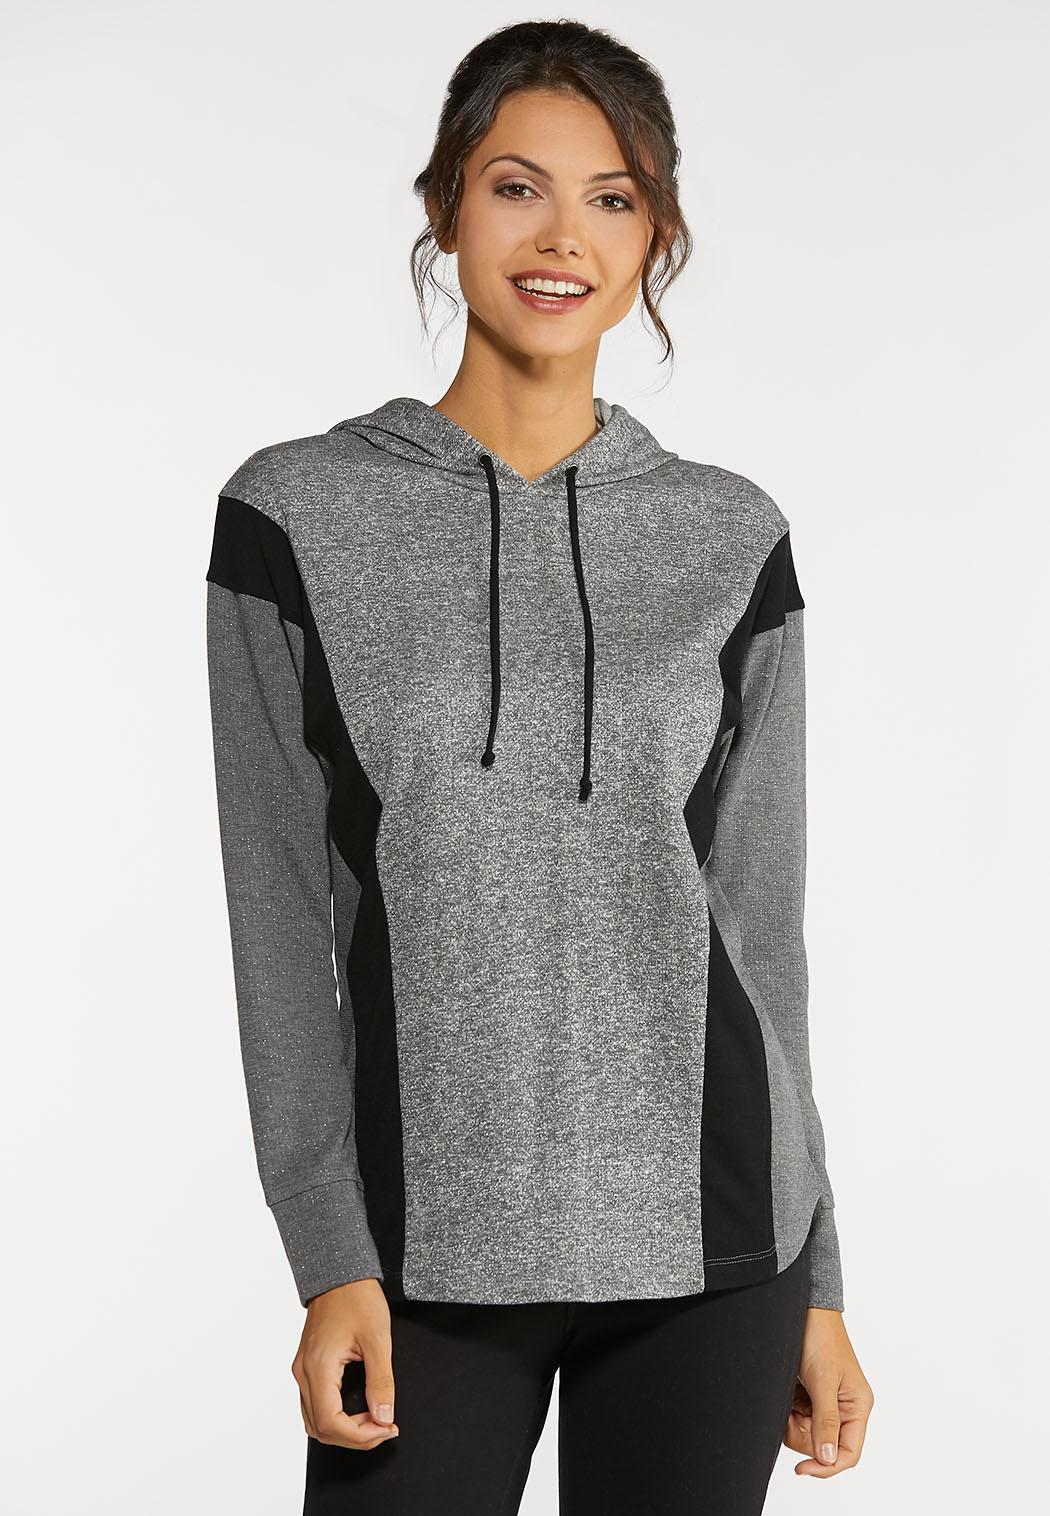 Gray Athleisure Hooded Top